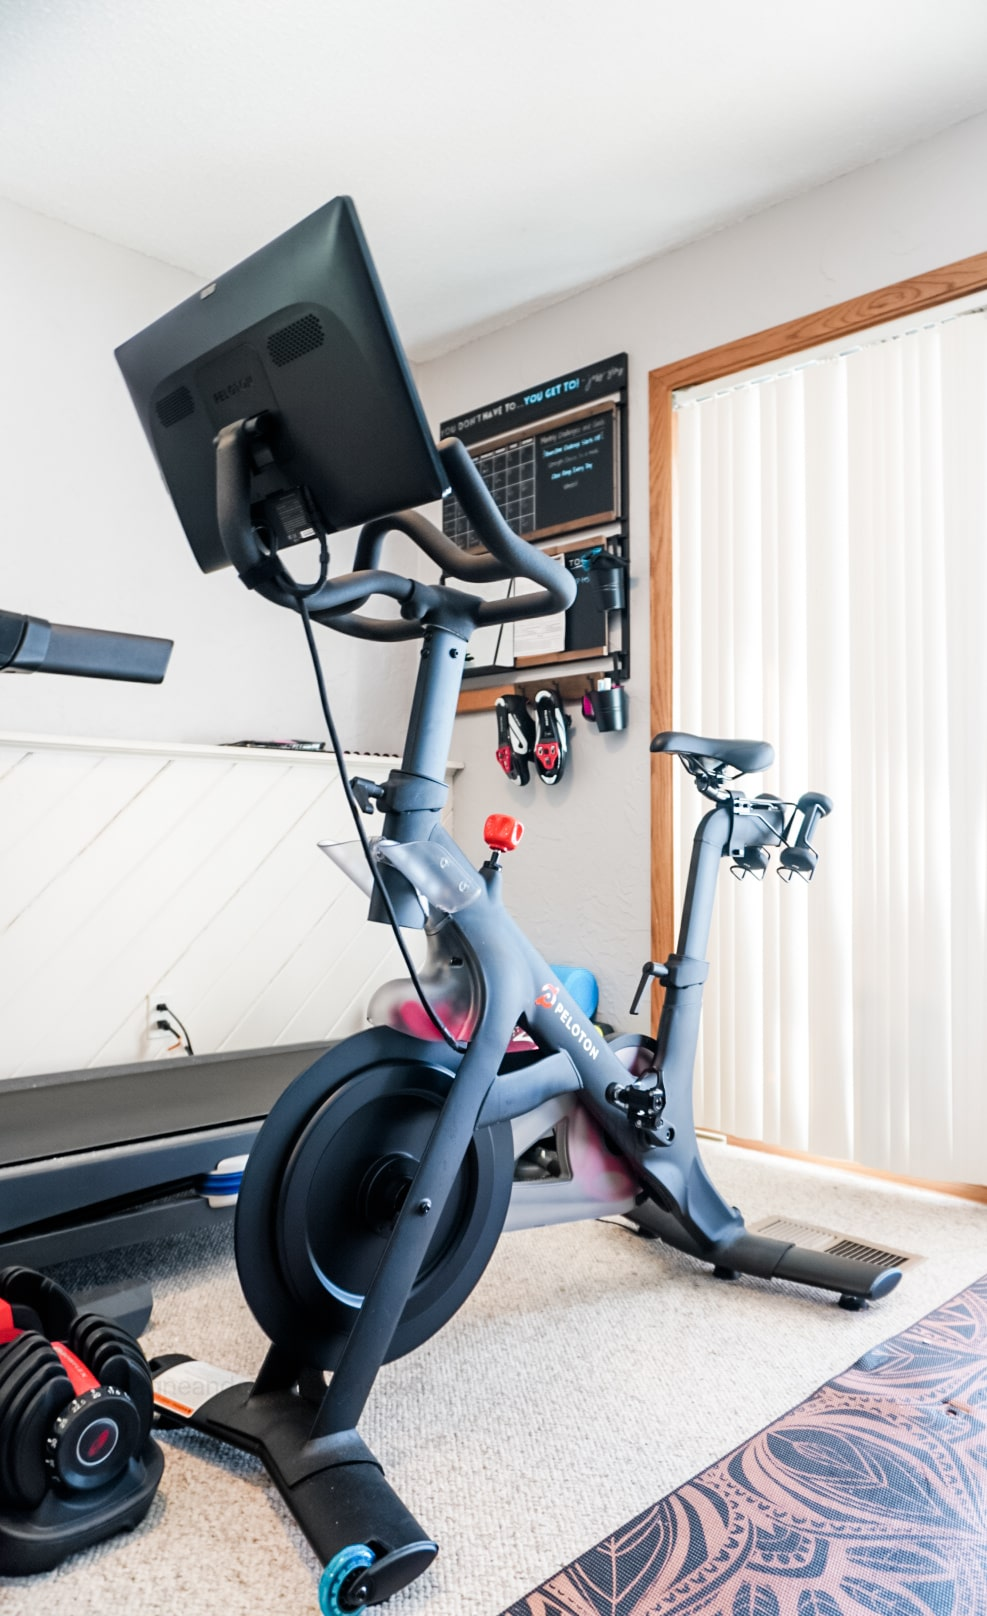 peloton bike in a home gym